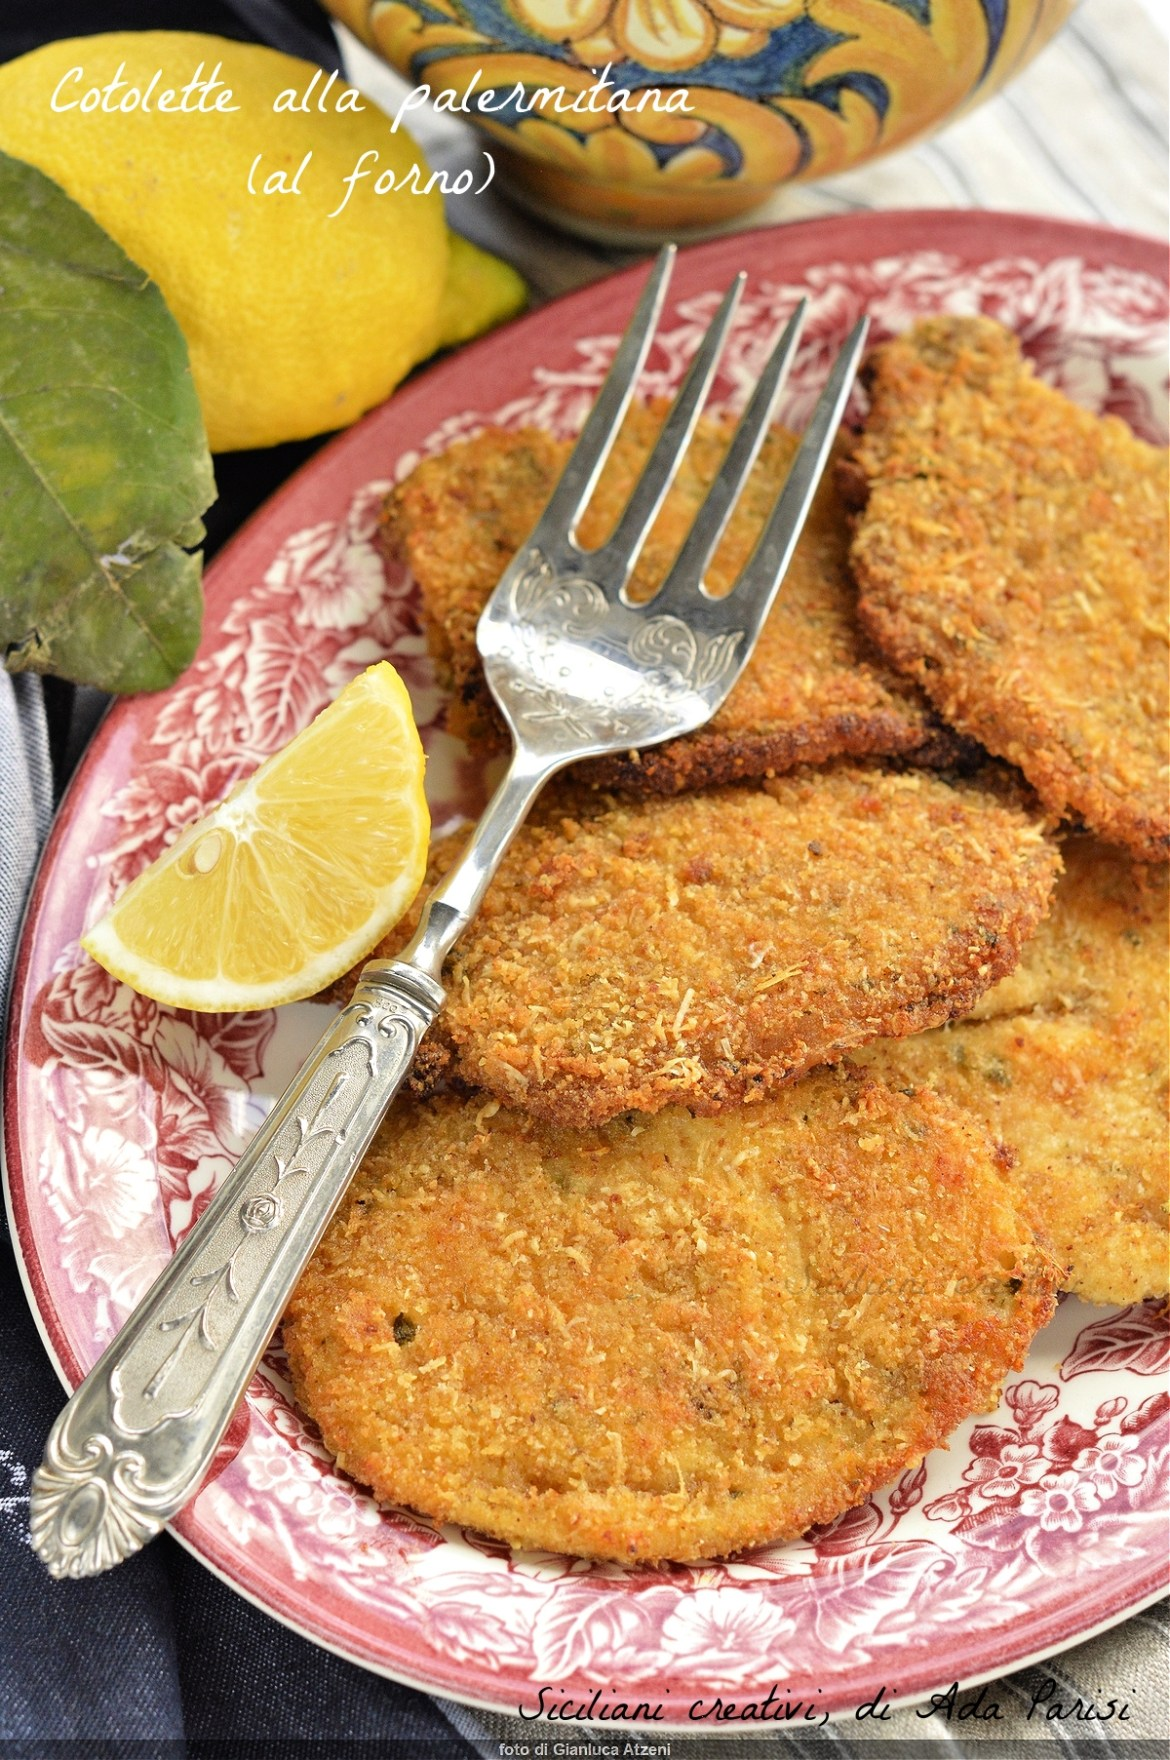 Palermo cutlets (baked)